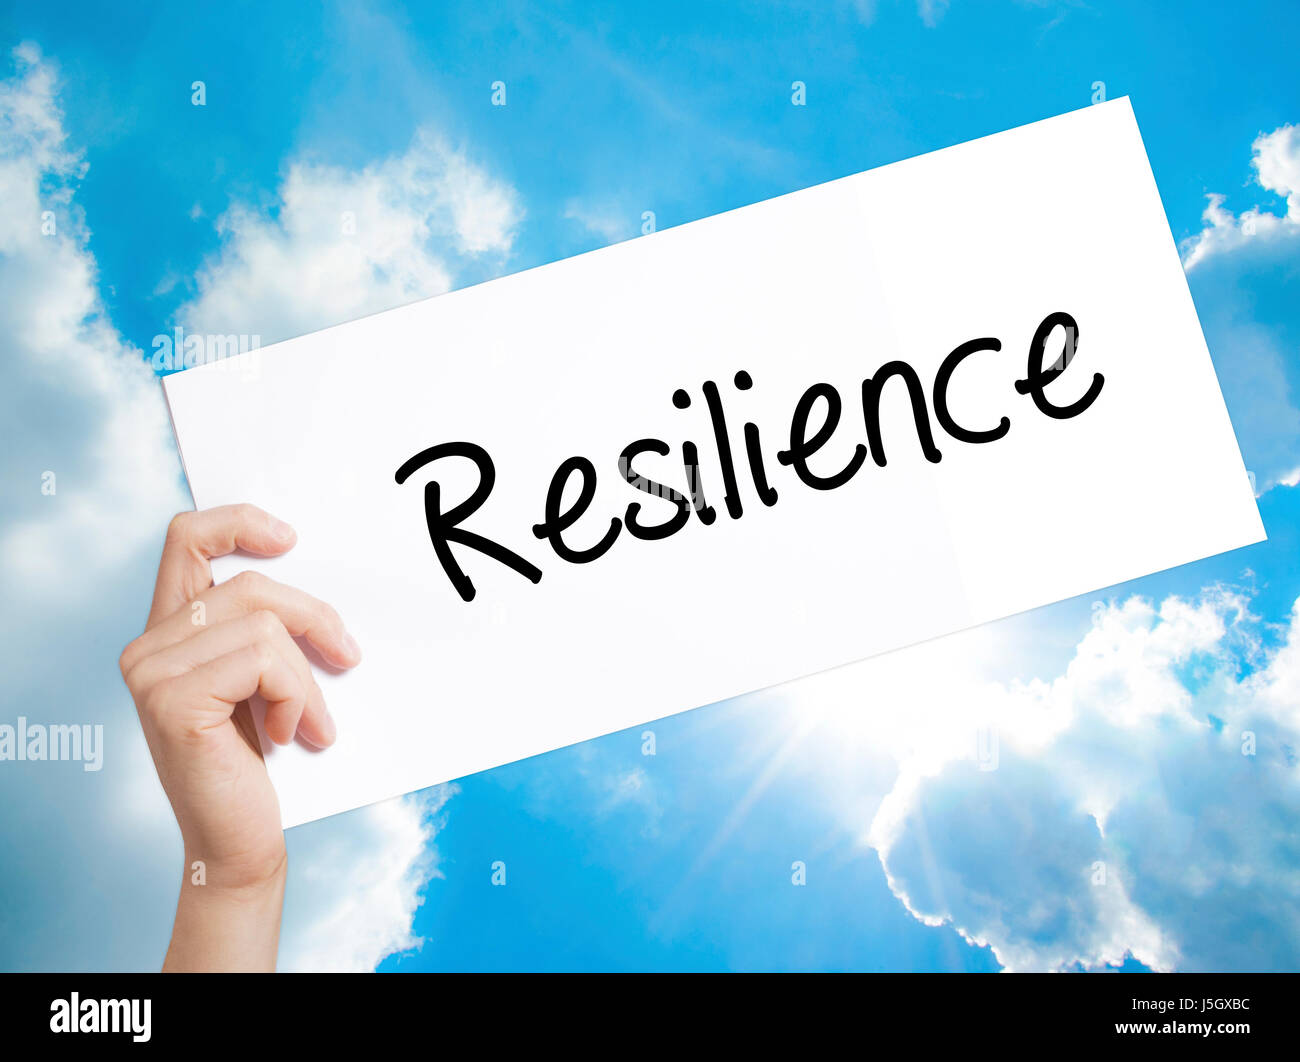 Resilience Sign on white paper. Man Hand Holding Paper with text. Isolated on sky background.   Business concept. - Stock Image